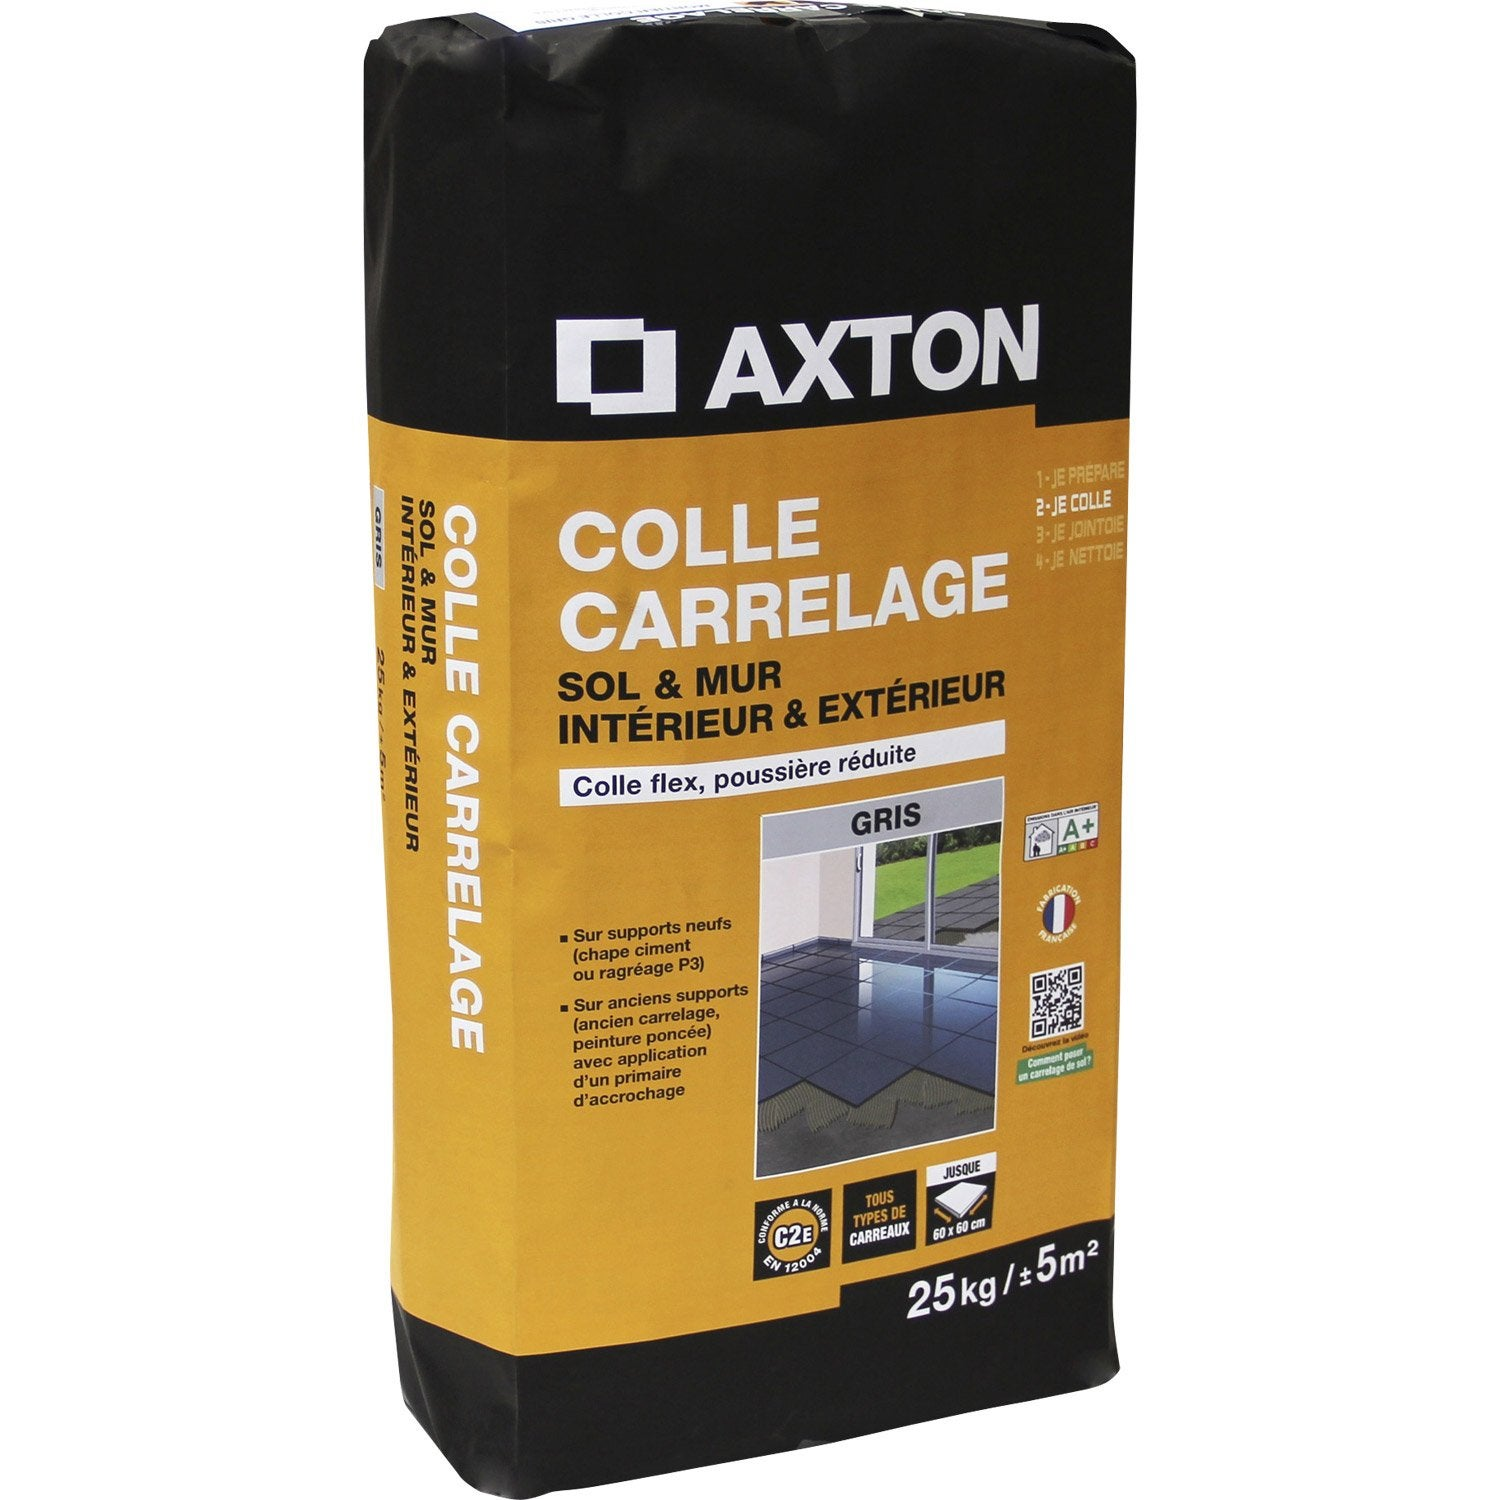 Mortier colle flexible pour carrelage mur et sol 25 kg for Quelle colle pour carrelage exterieur